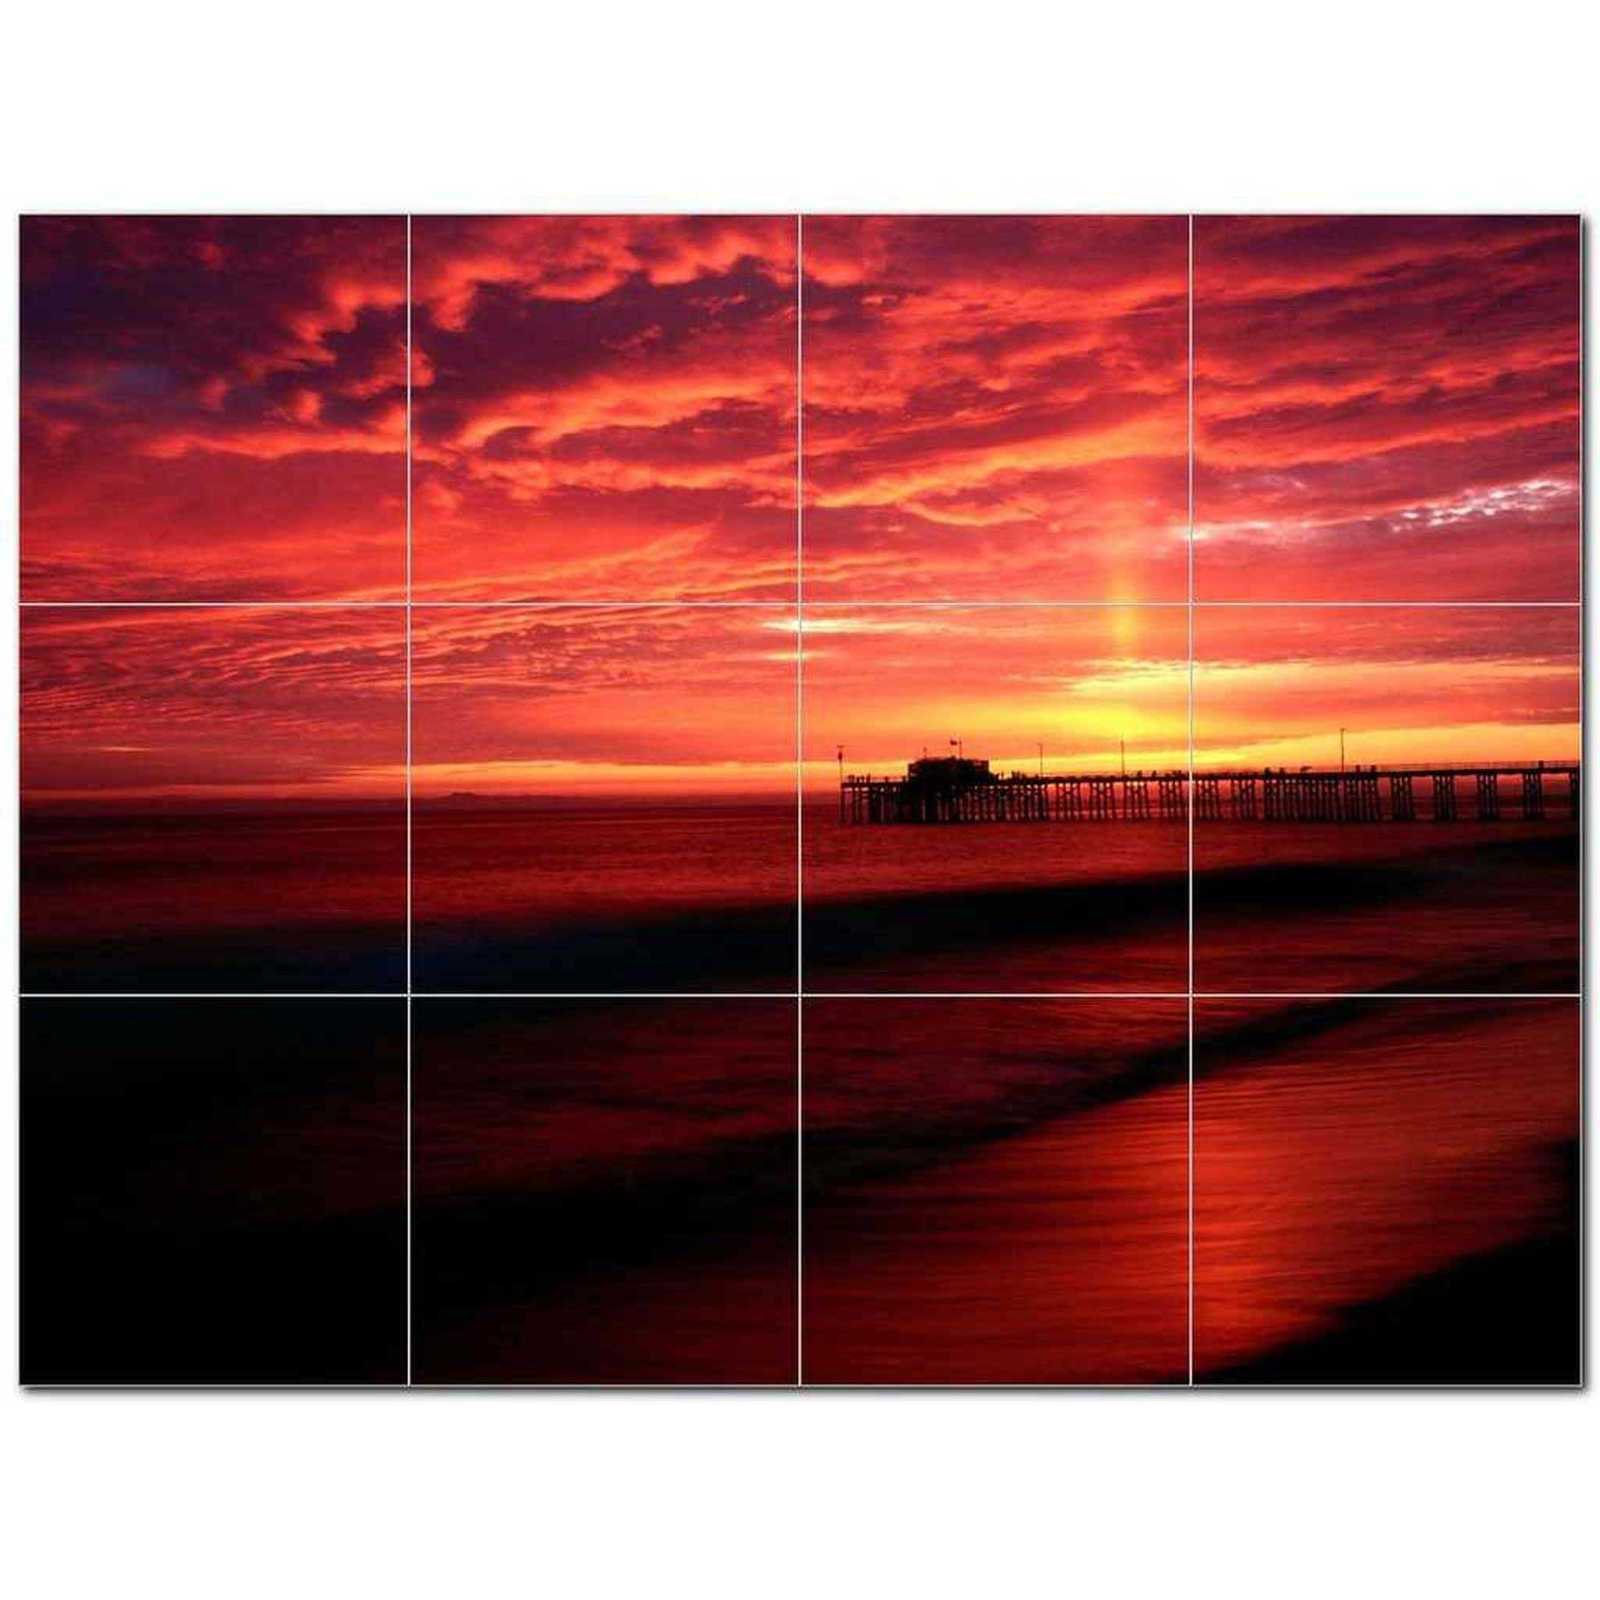 Primary image for Sunset Picture Ceramic Tile Mural Kitchen Backsplash Bathroom Shower BAZ405954